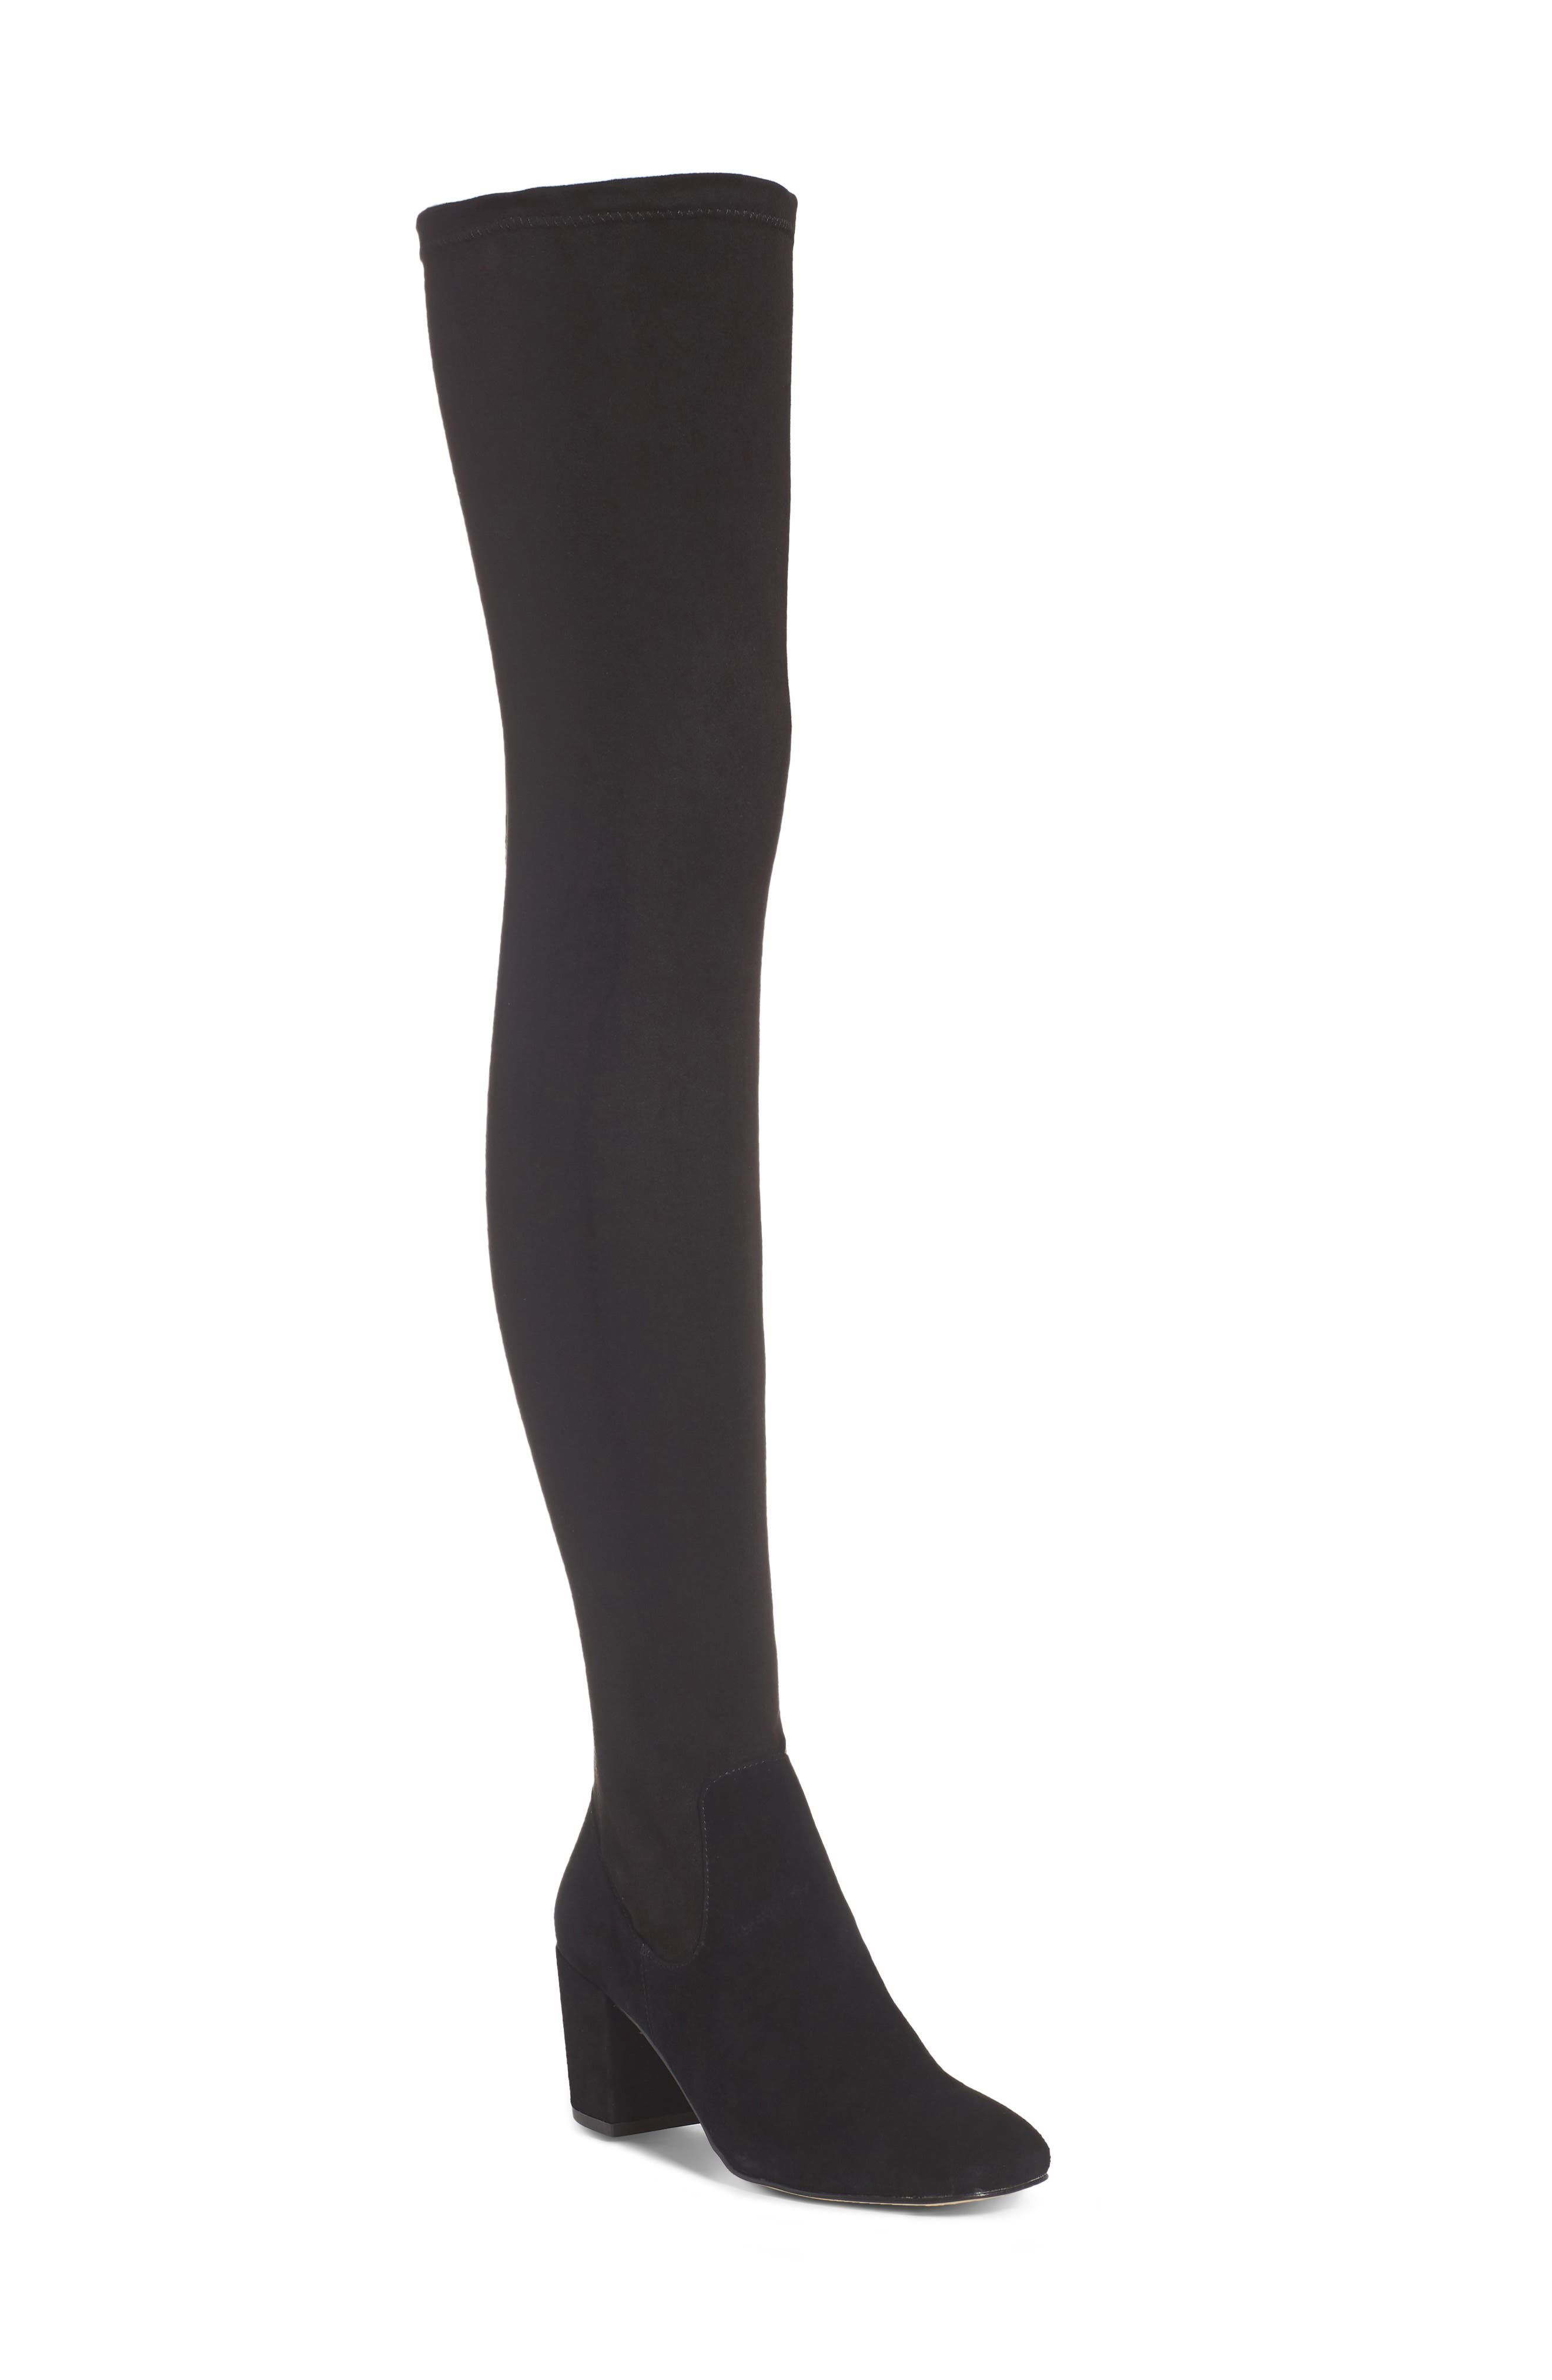 M4D3 Sobrina Over the Knee Boot,                             Main thumbnail 1, color,                             001